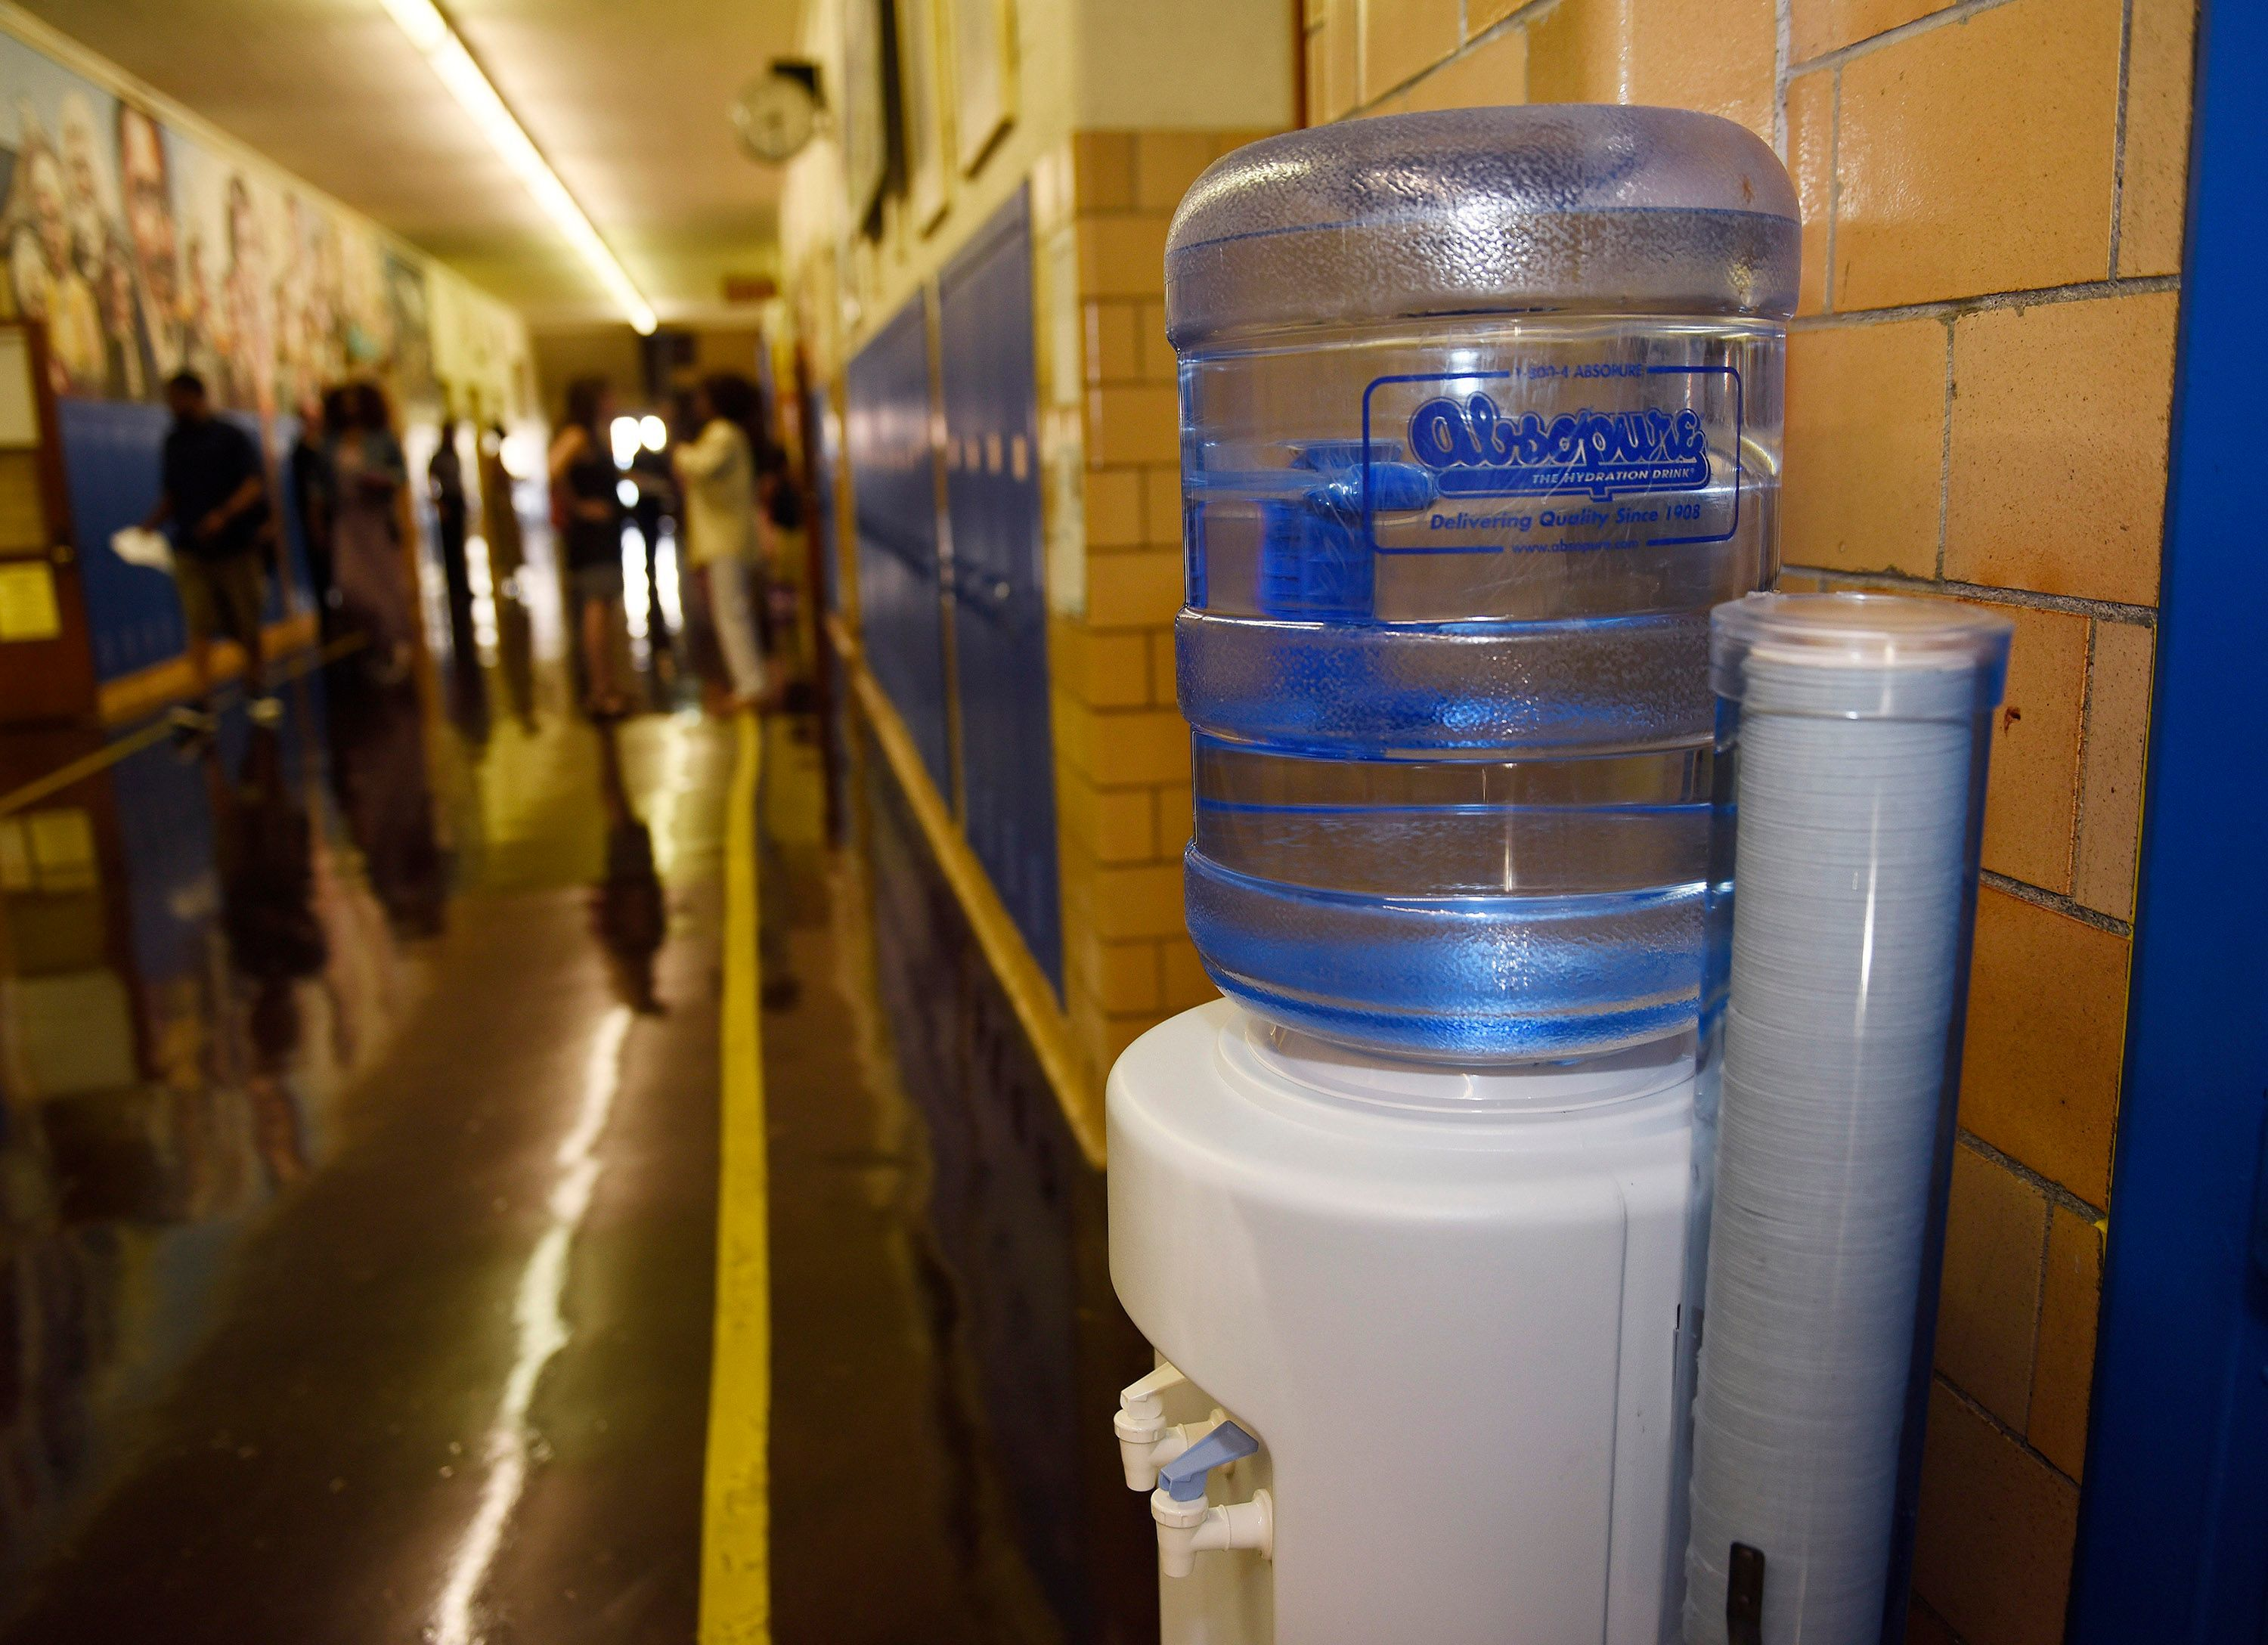 DPSCD has been using water stations and bottled water while the district determines a permanent means to deliver safe, clean water to students.